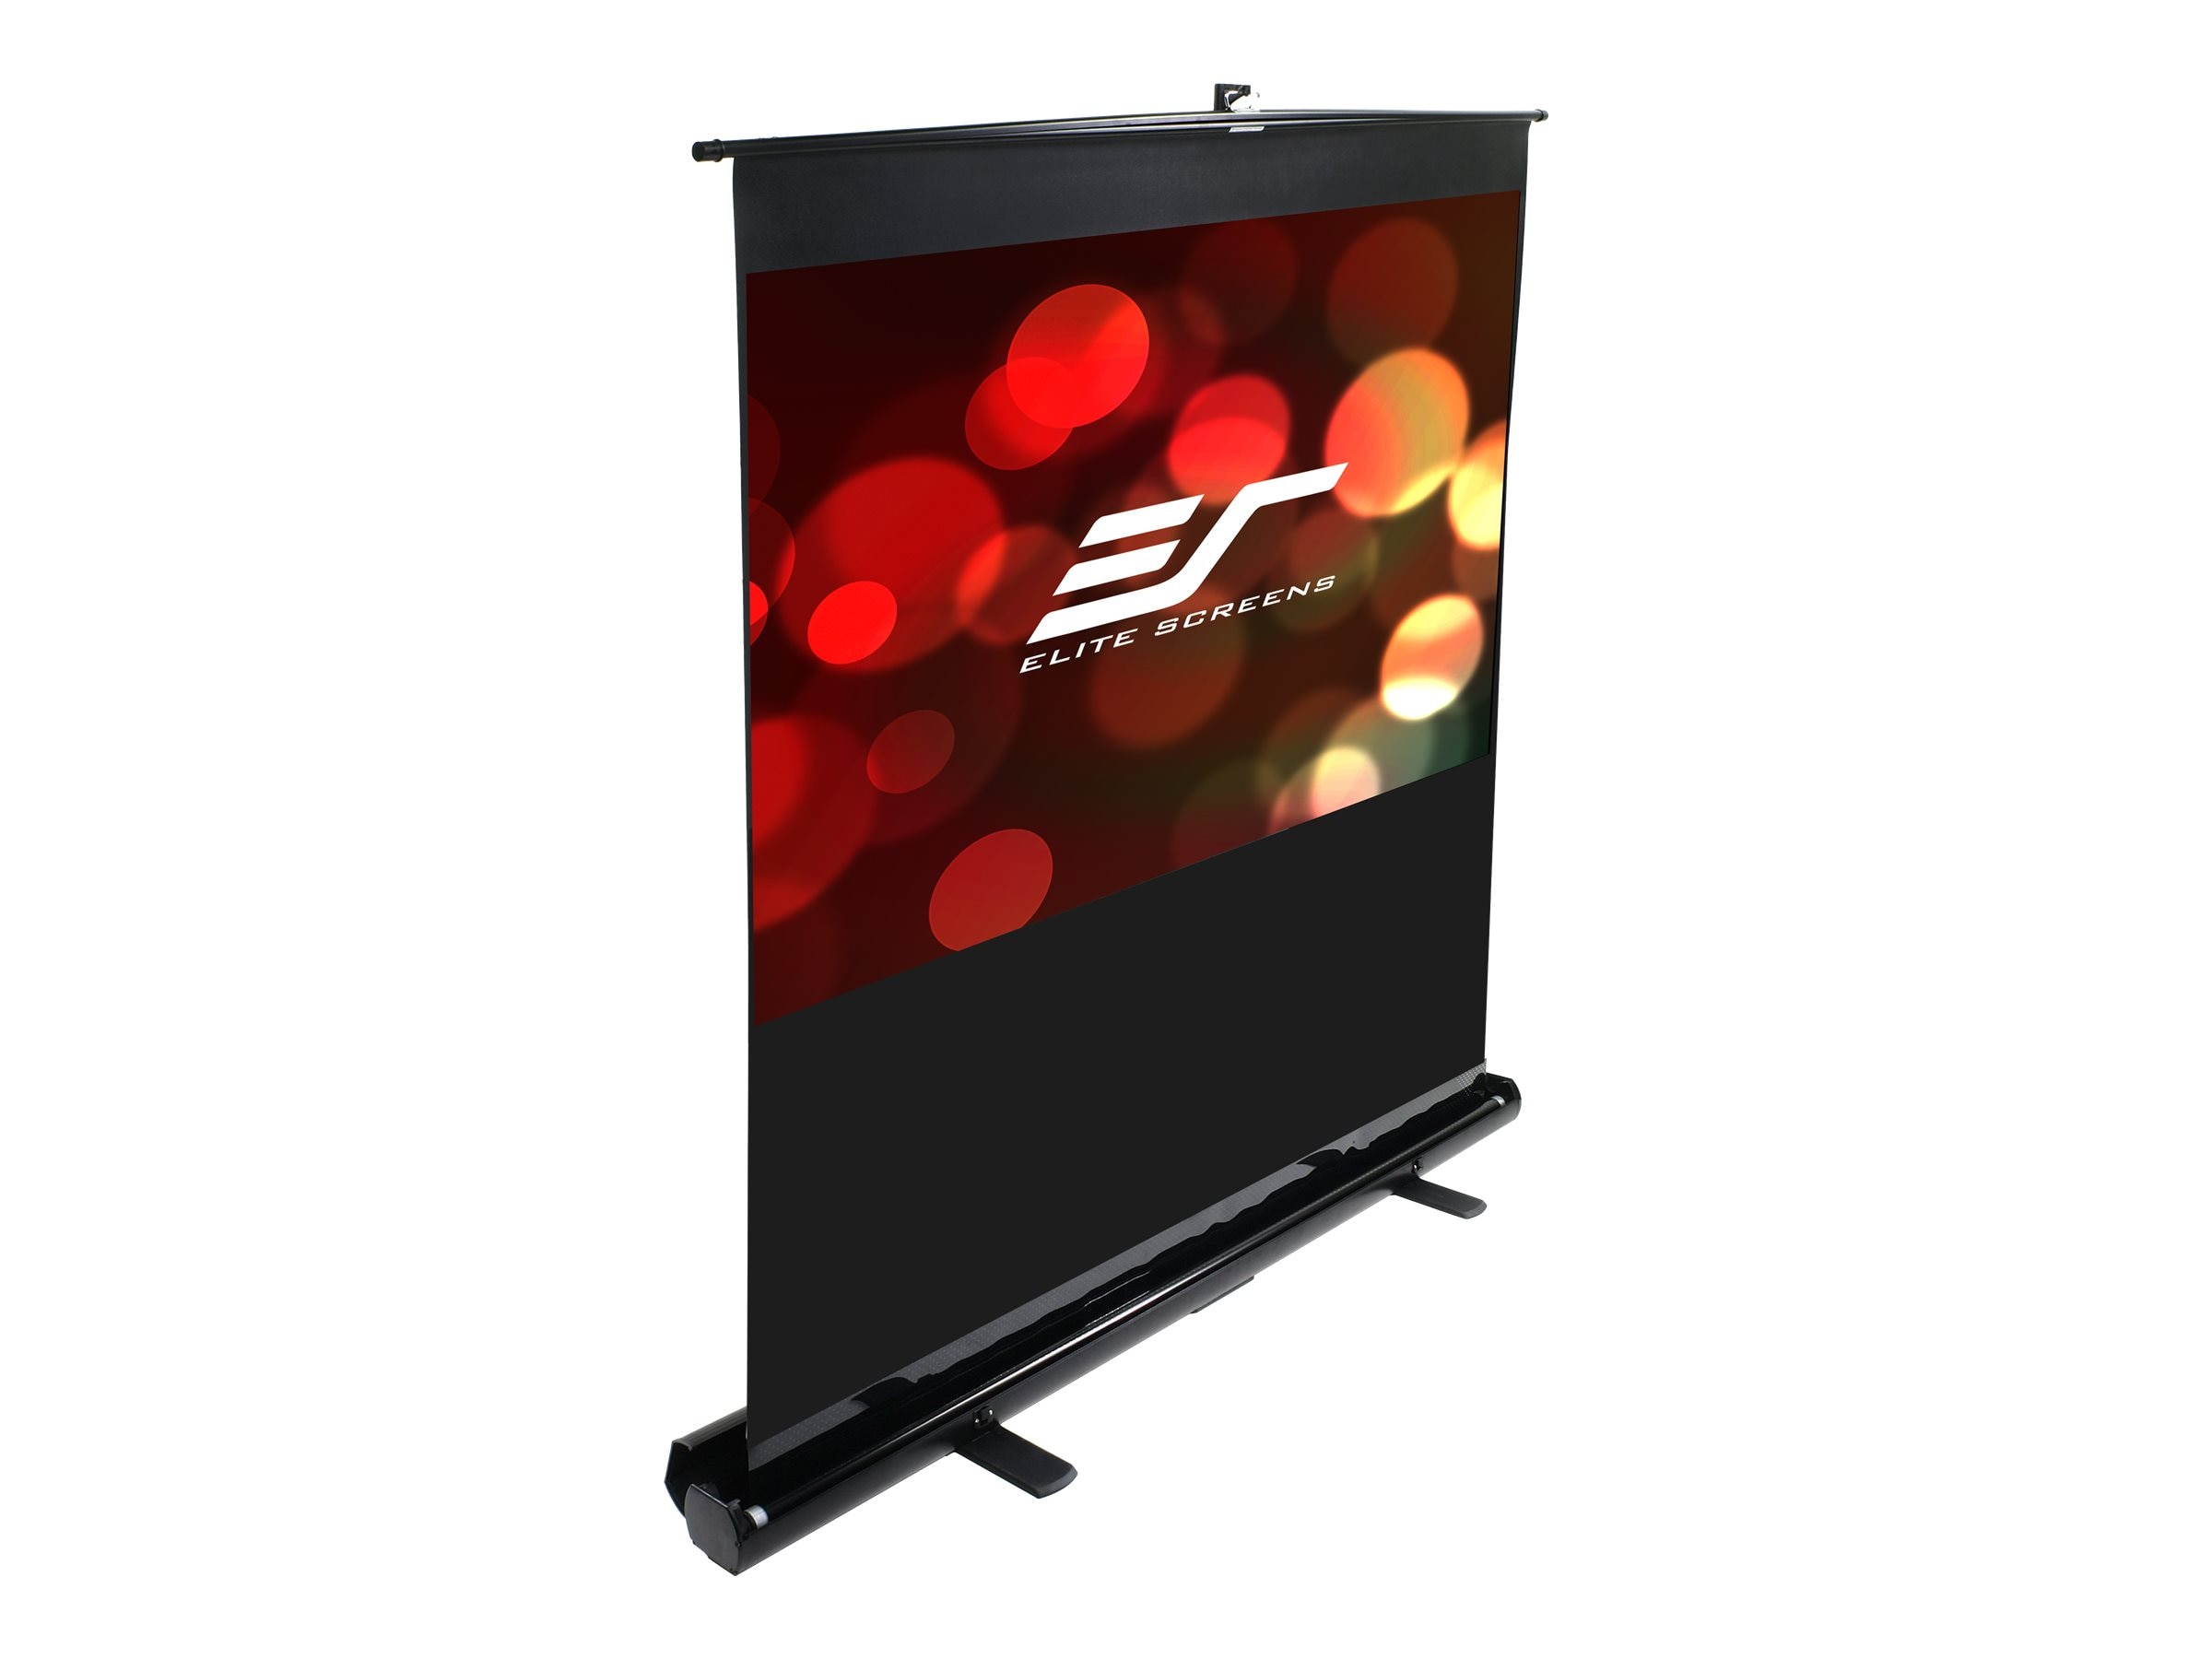 Elite ezCinema Series Projection Screen, MaxWhite, 4:3, 120, F120NWV, 12579478, Projector Screens